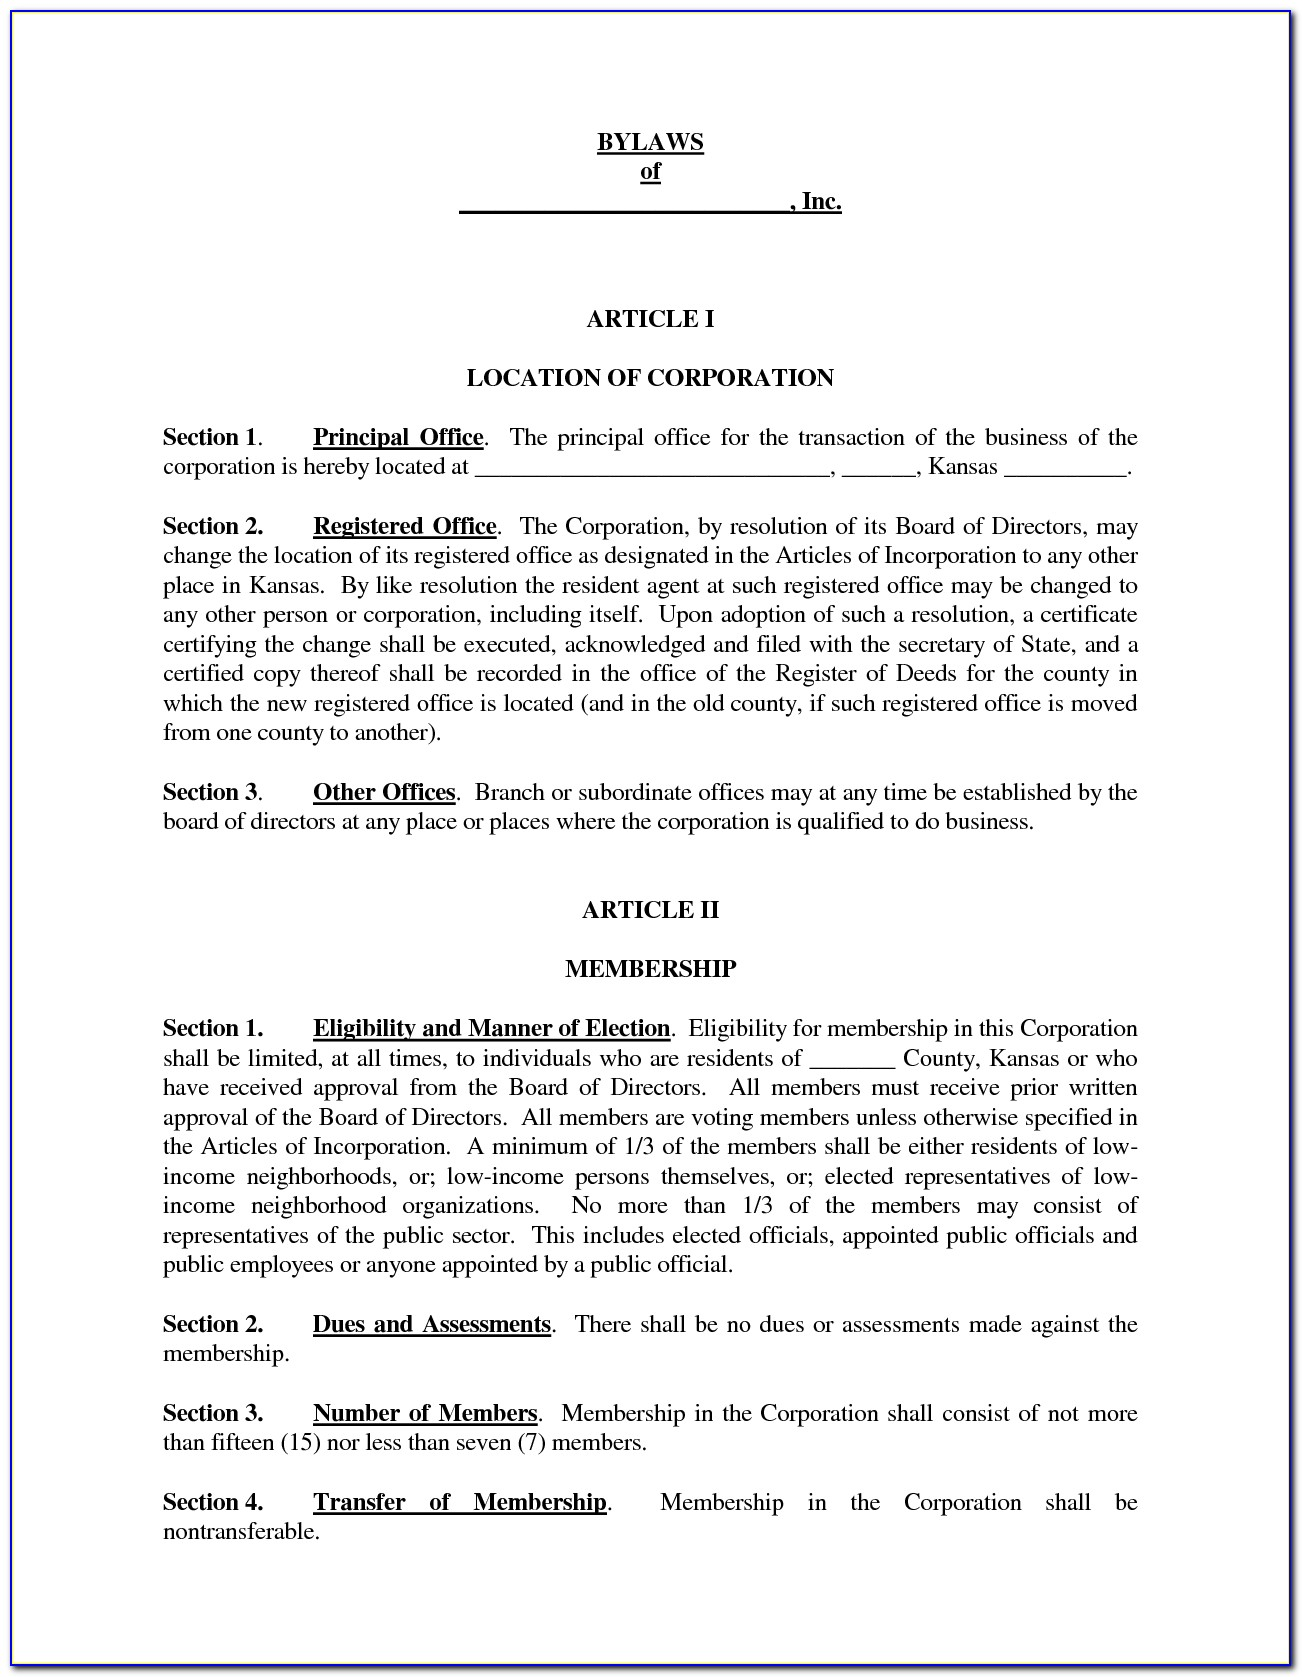 Organization Constitution And Bylaws Template